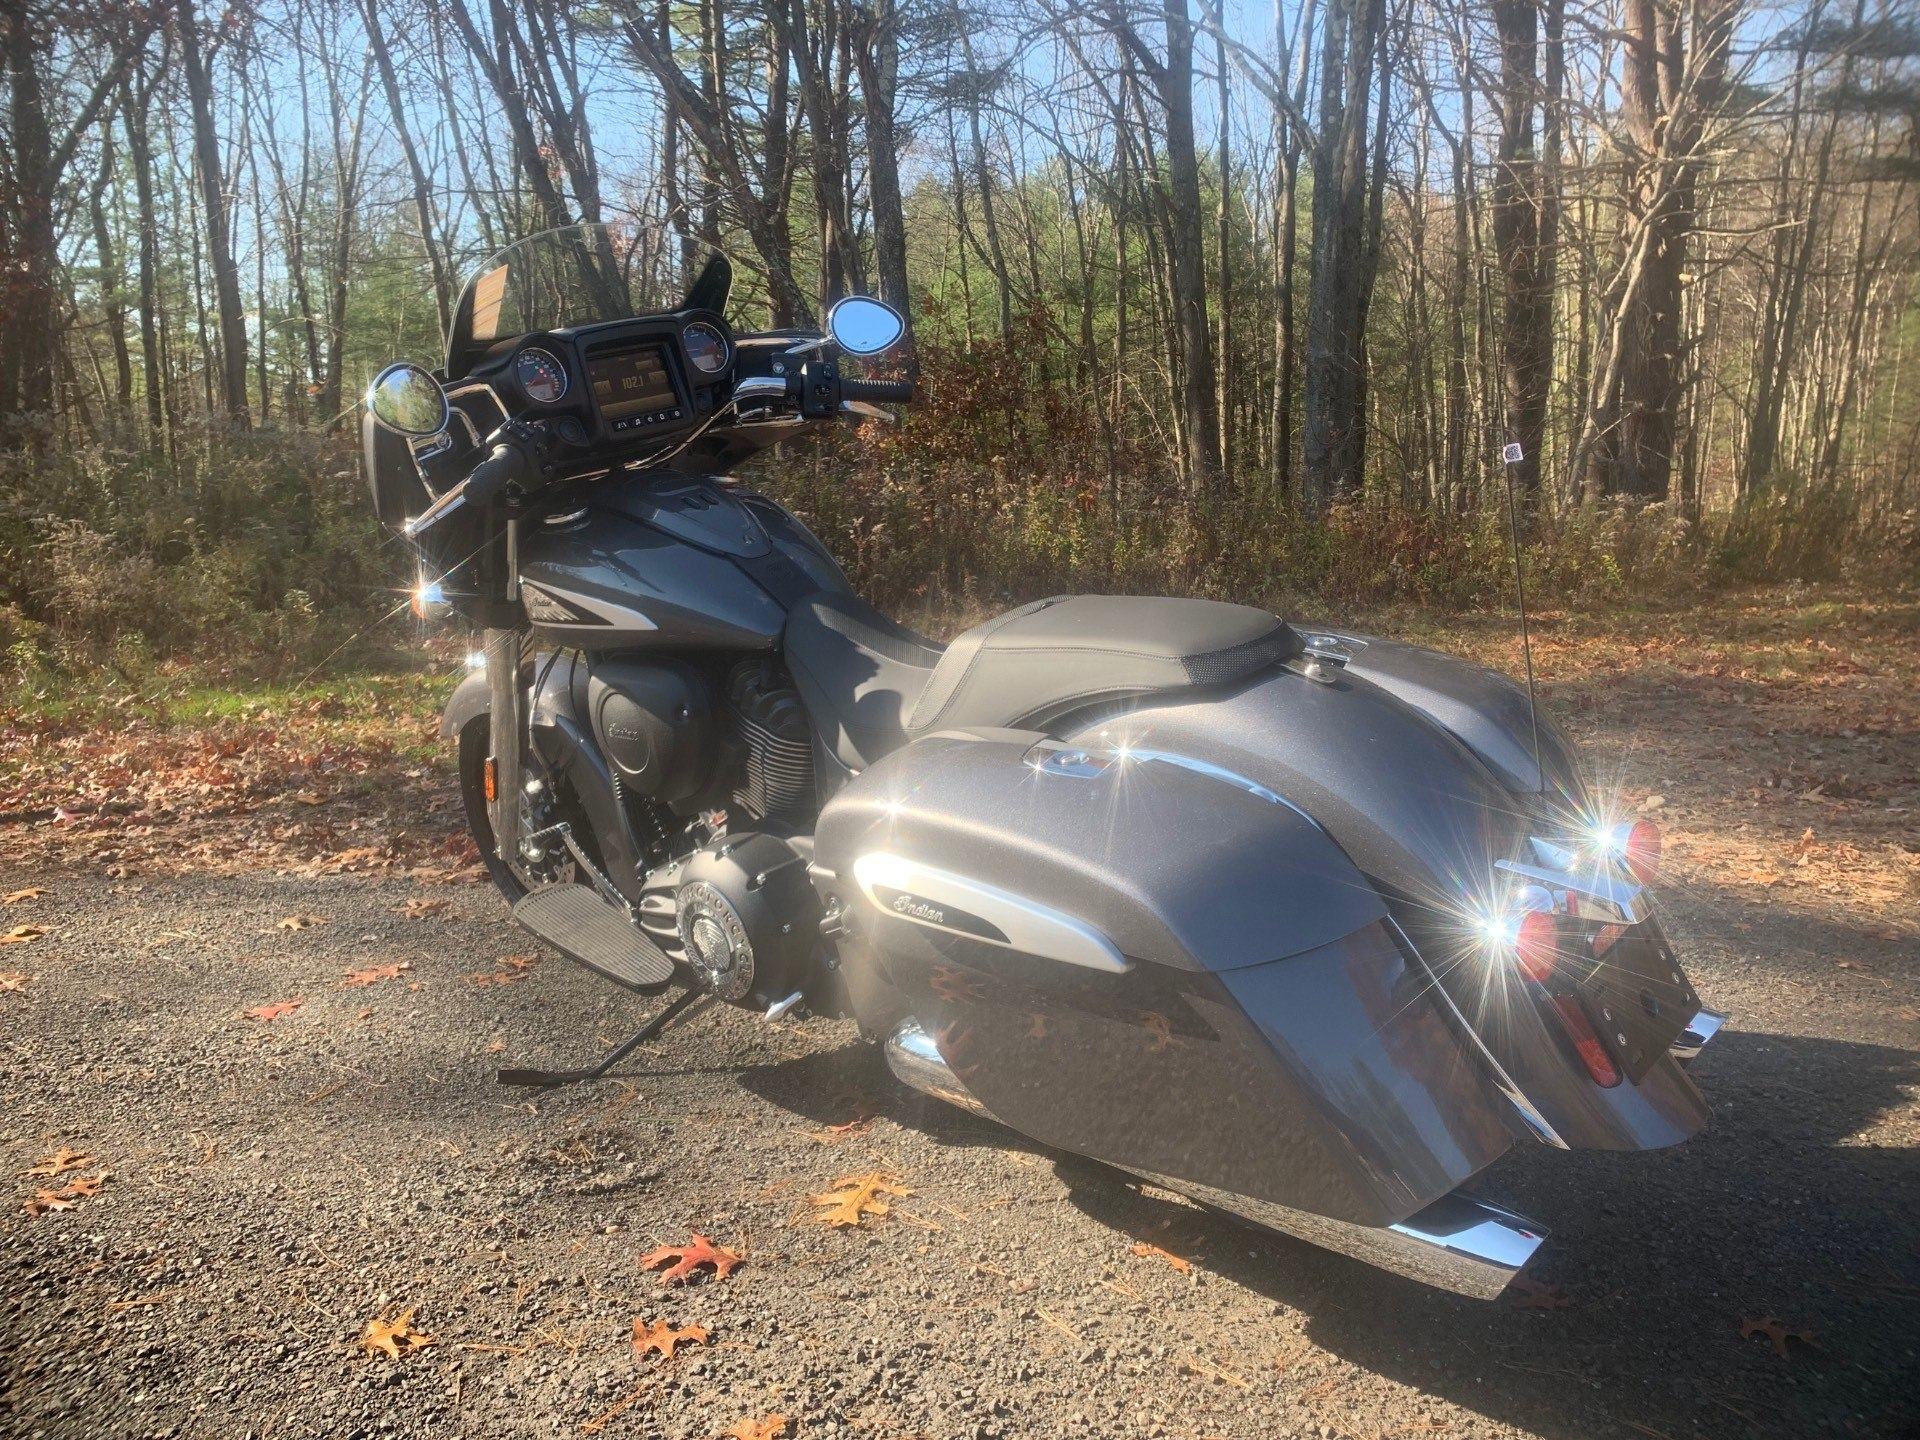 2019 Indian Chieftain® ABS in Westfield, Massachusetts - Photo 3